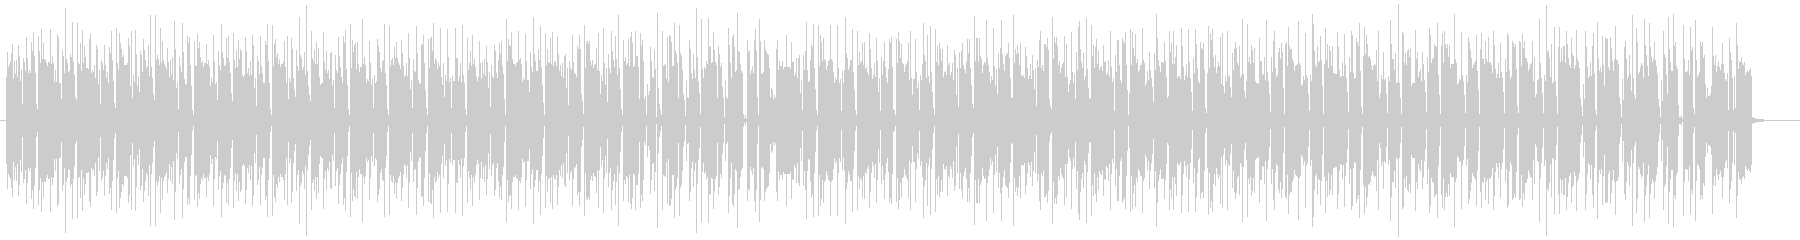 Light syntheline music's unreproduced waveform